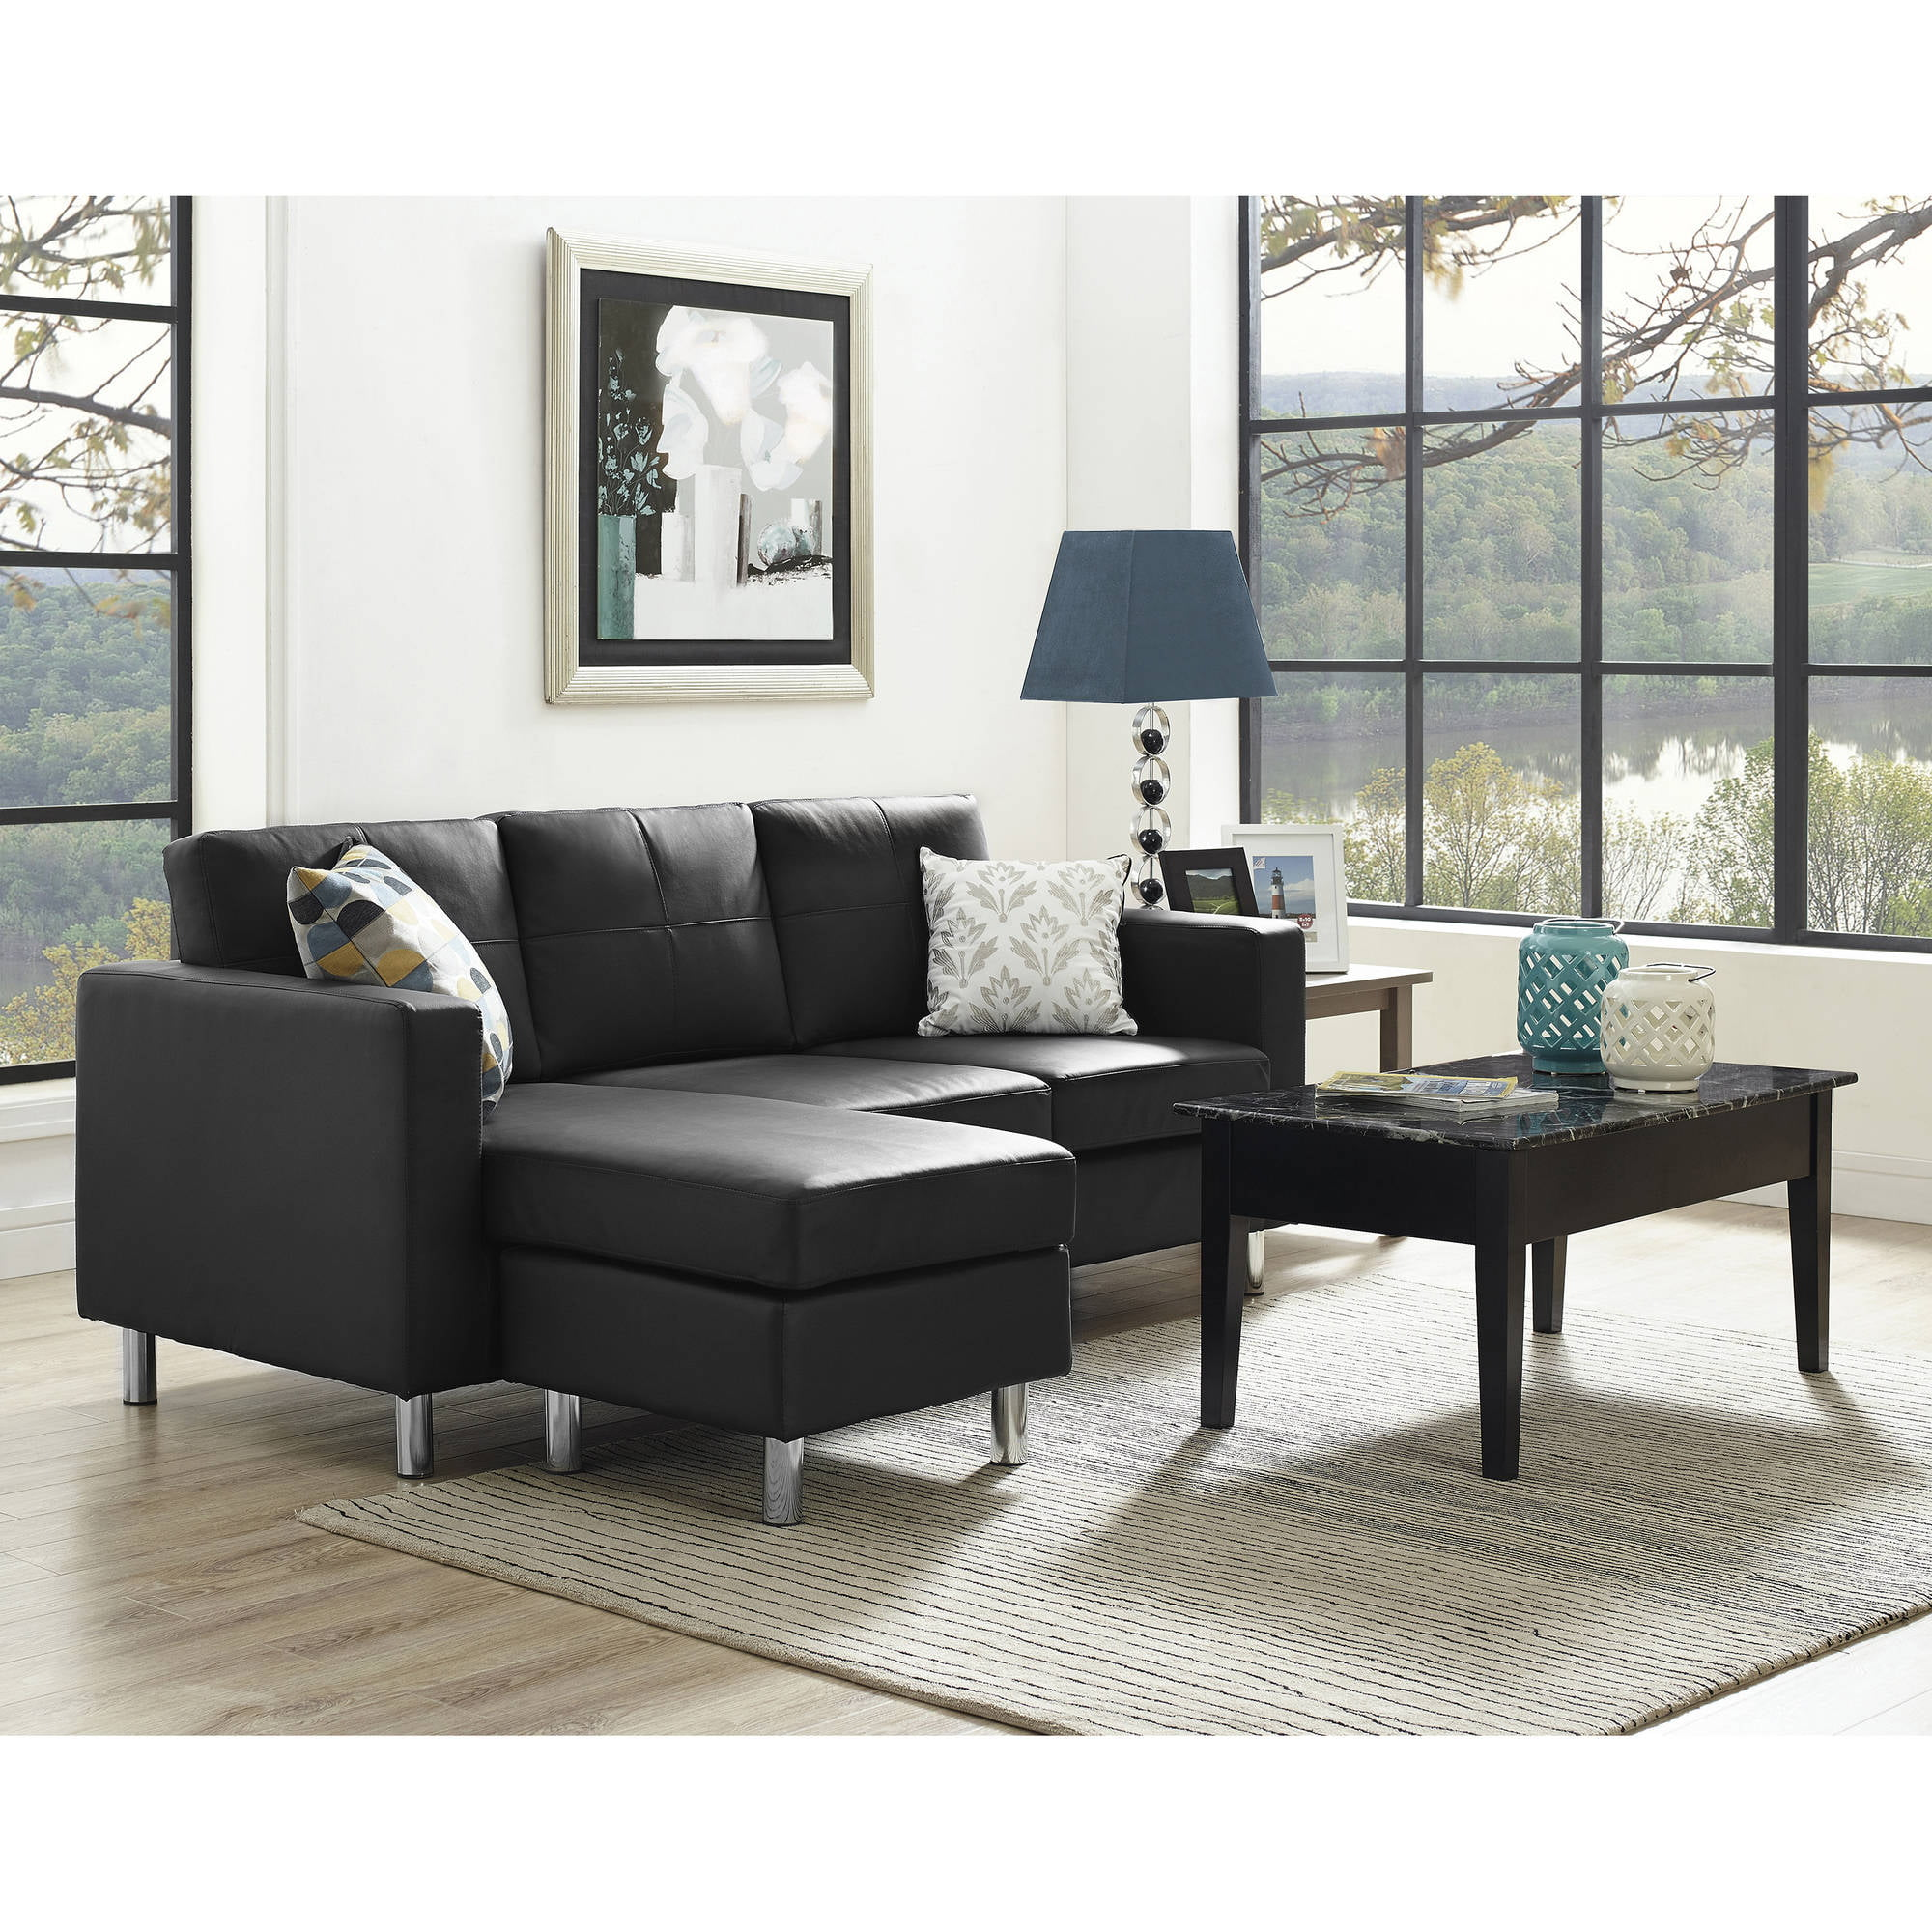 Small Spaces Living Room Value BundleWalmartcom